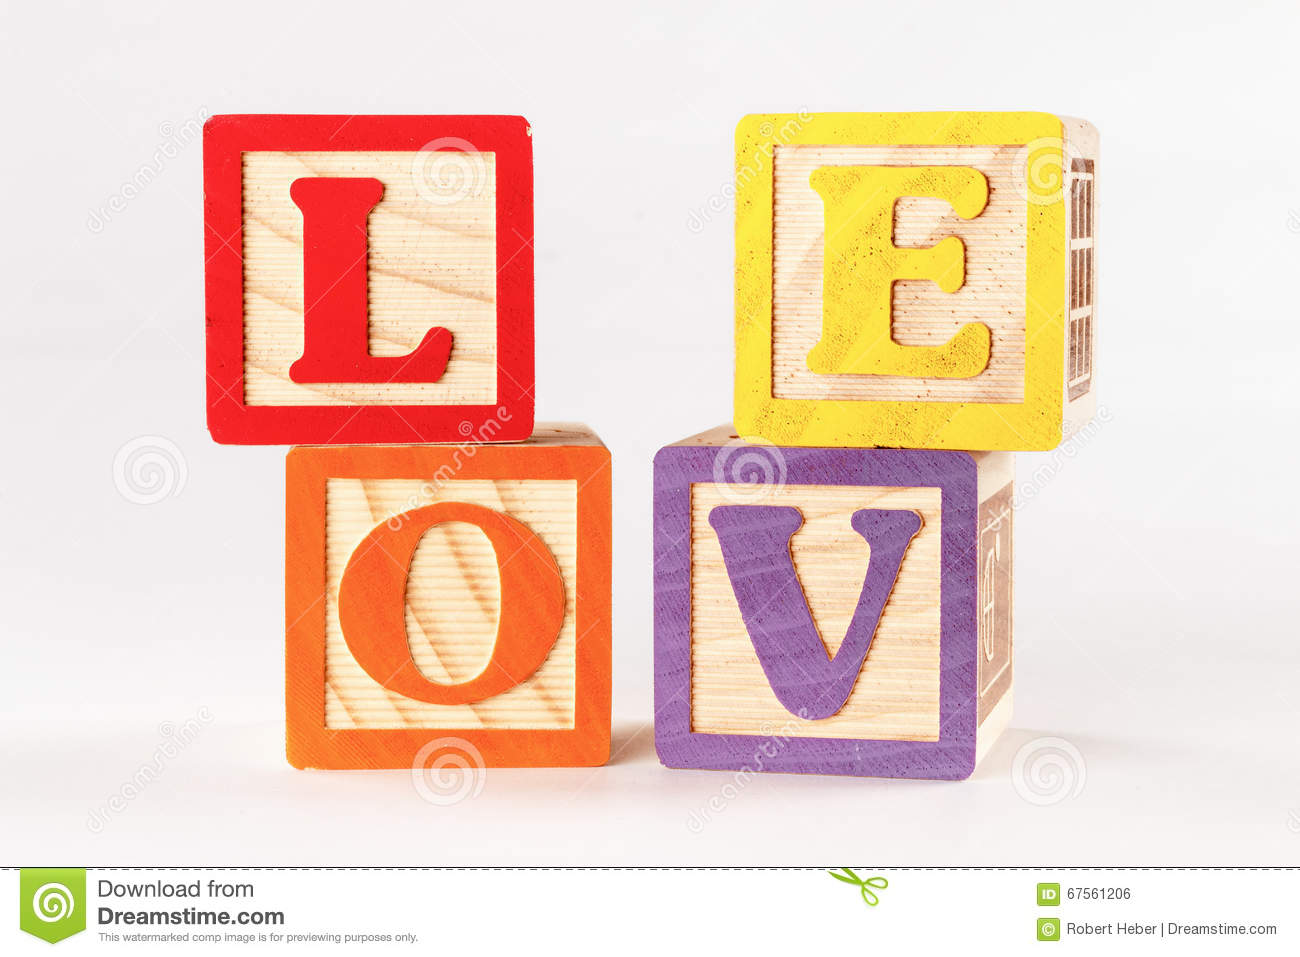 Love block word clipart banner royalty free library Mixed Up Love Blocks Stock Photo - Image: 67561206 banner royalty free library